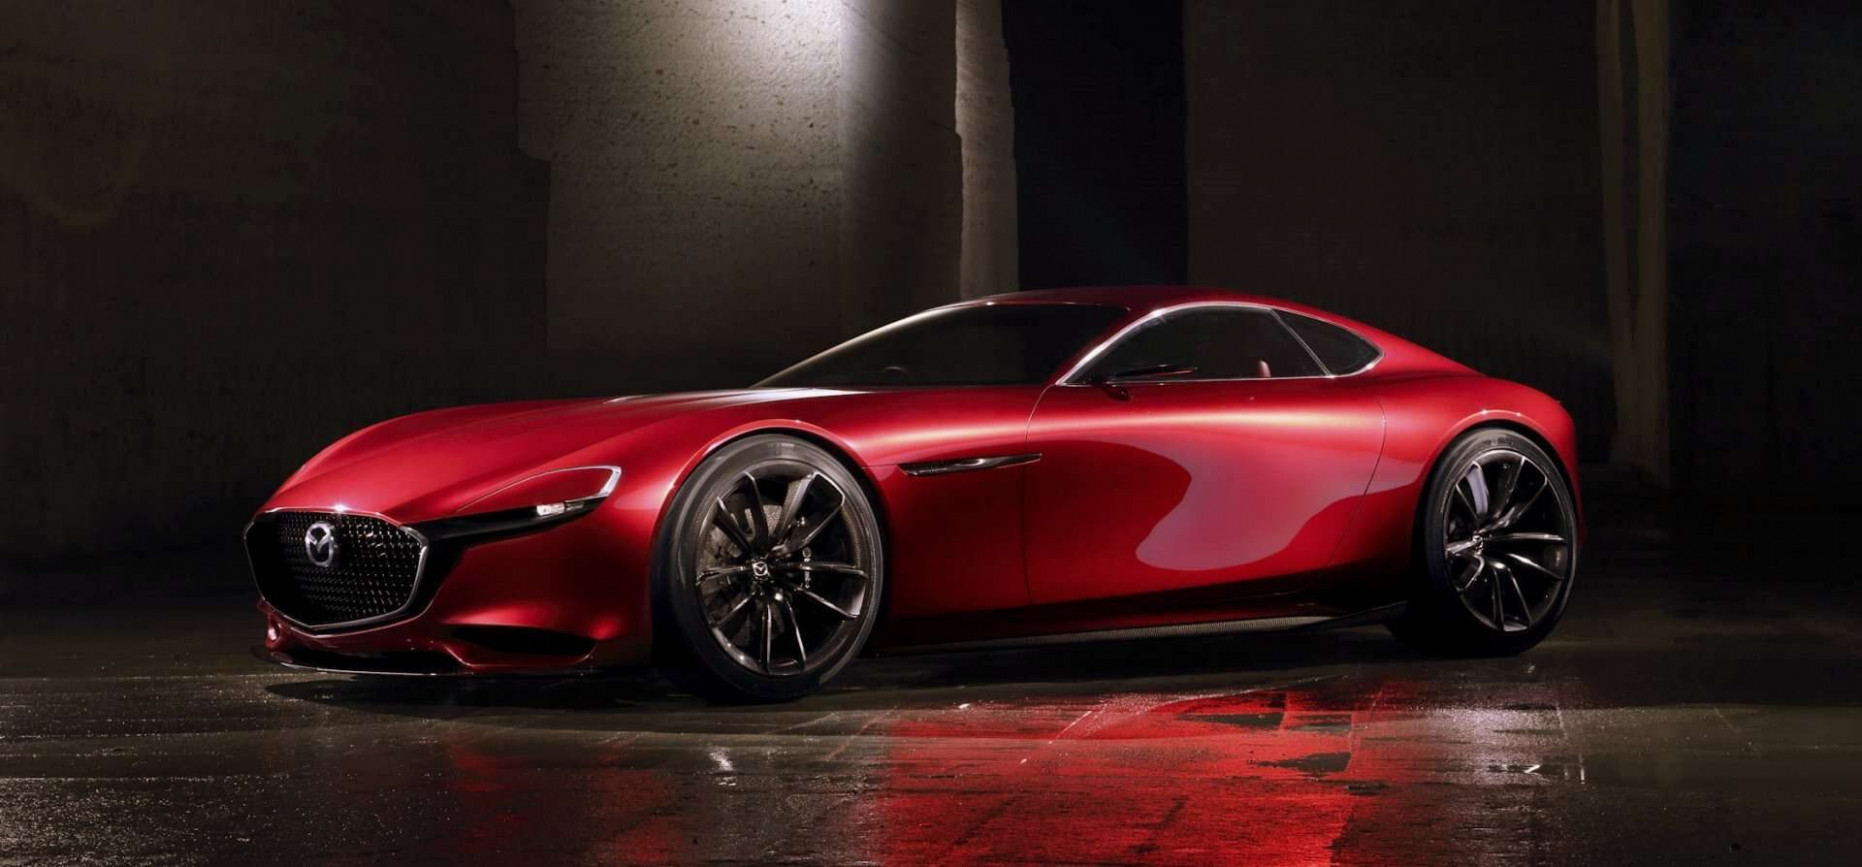 8 Mazda 8 Redesign: Vision Coupe & Use SkyActiv-X or D